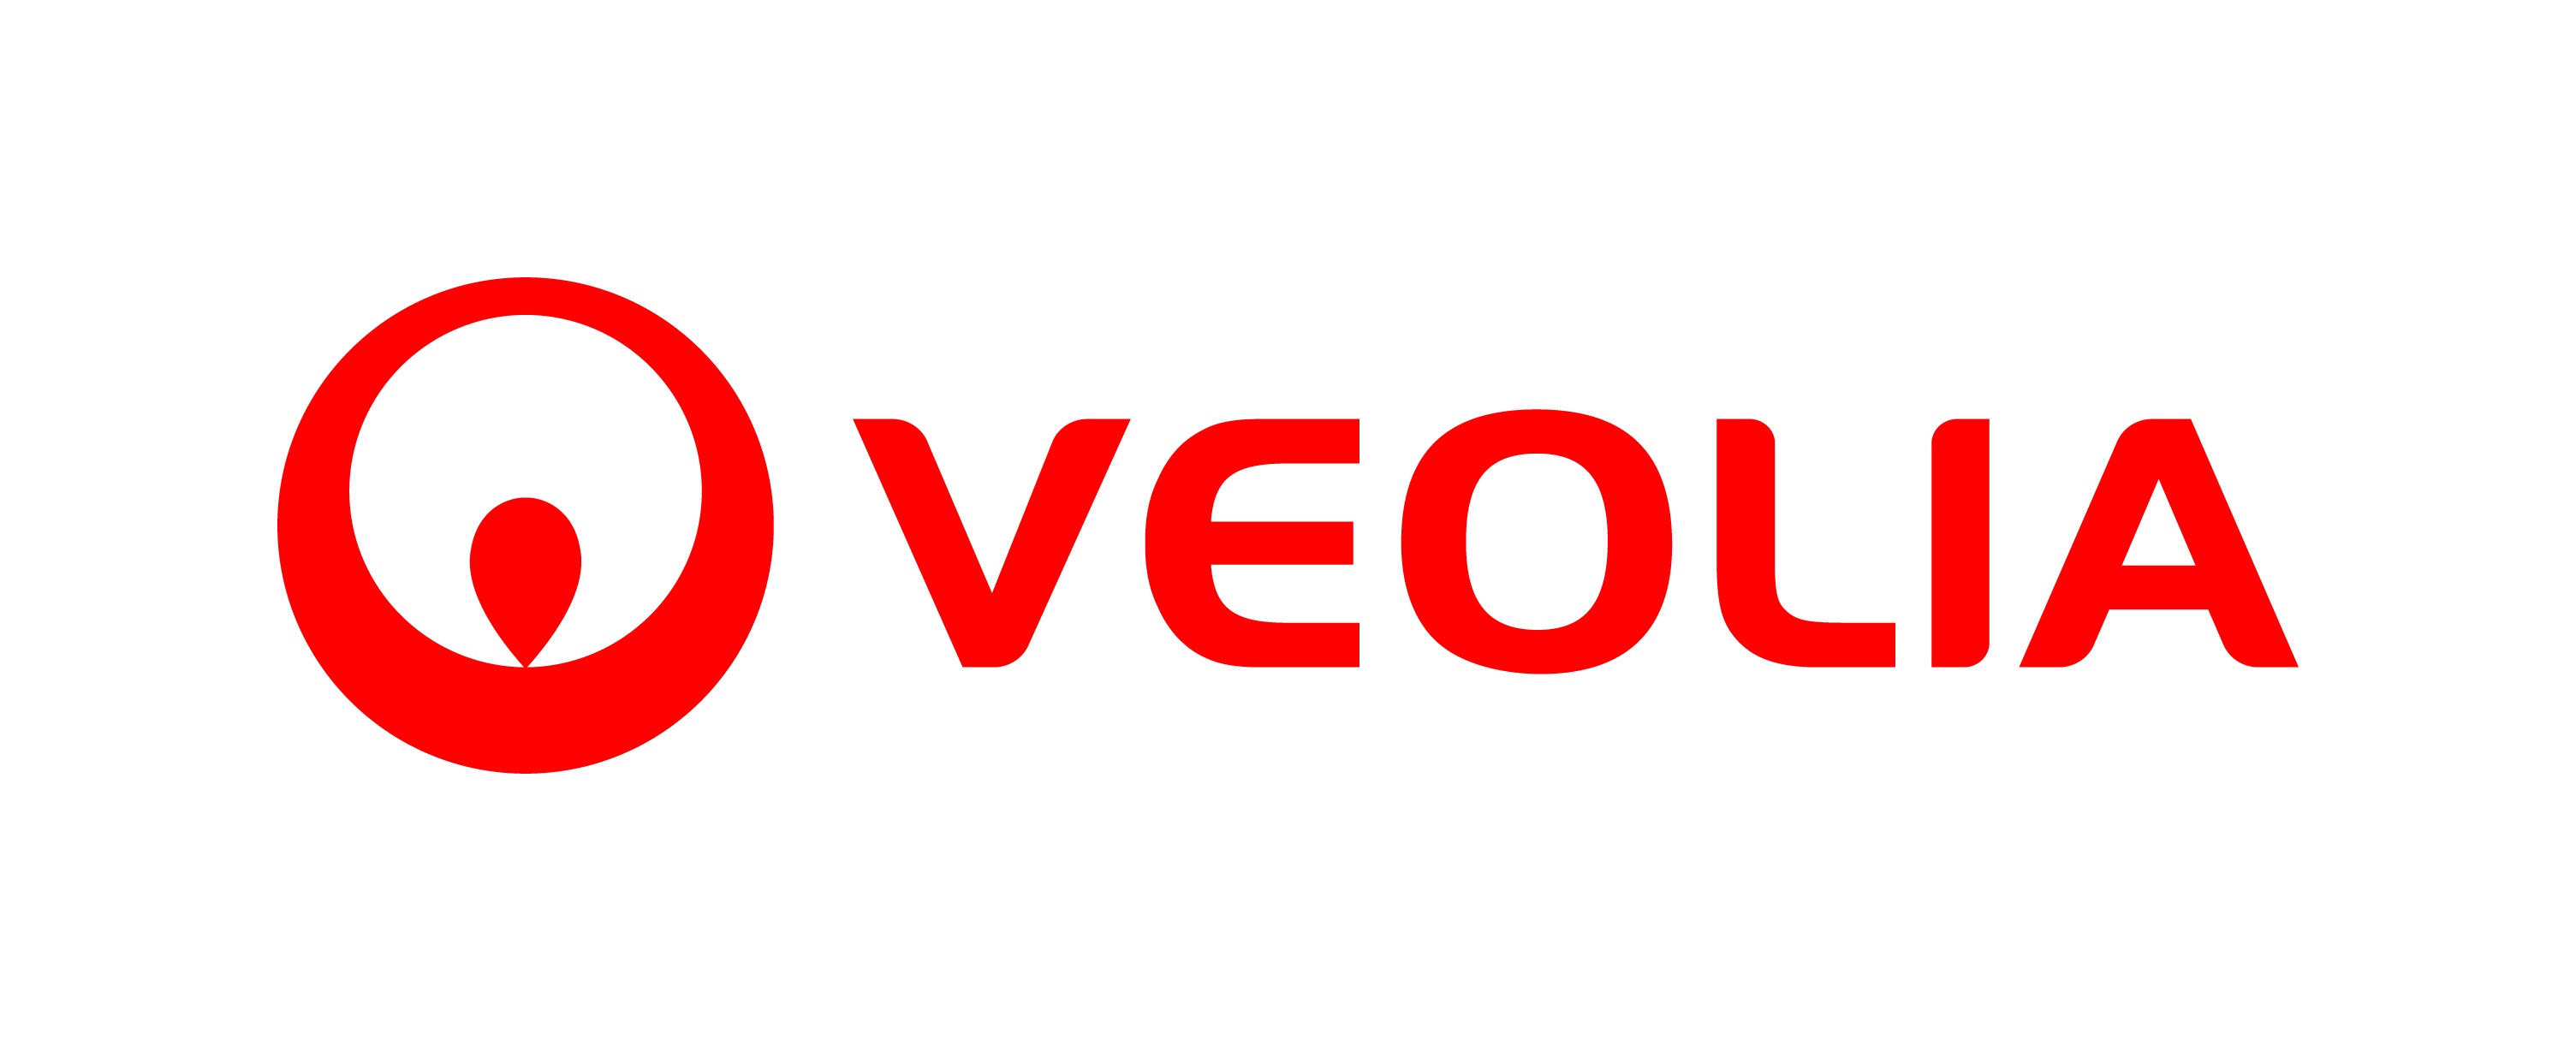 LOGO VEOLIA_HD_JPEG